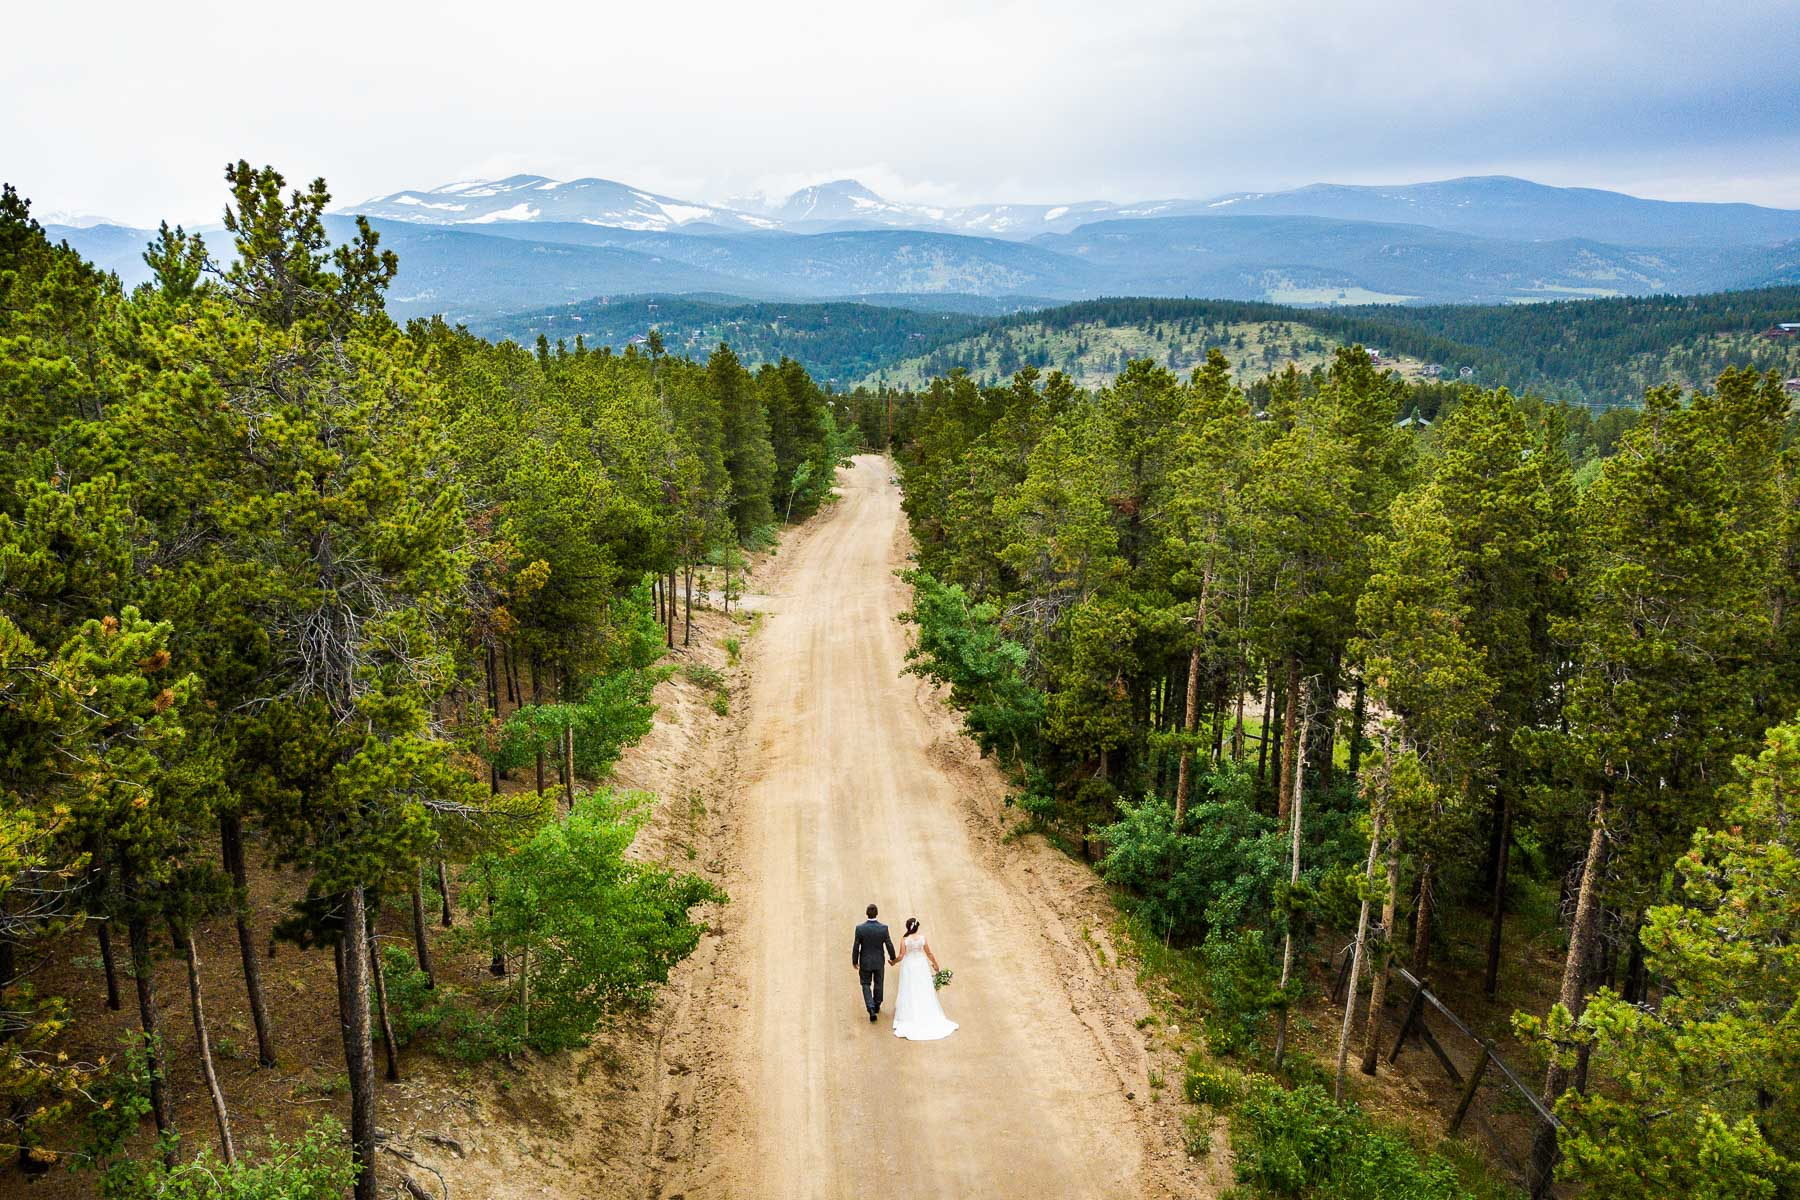 Colorado Wedding Couple Portrait   After finishing with photos, the couple walked back to their house along the road